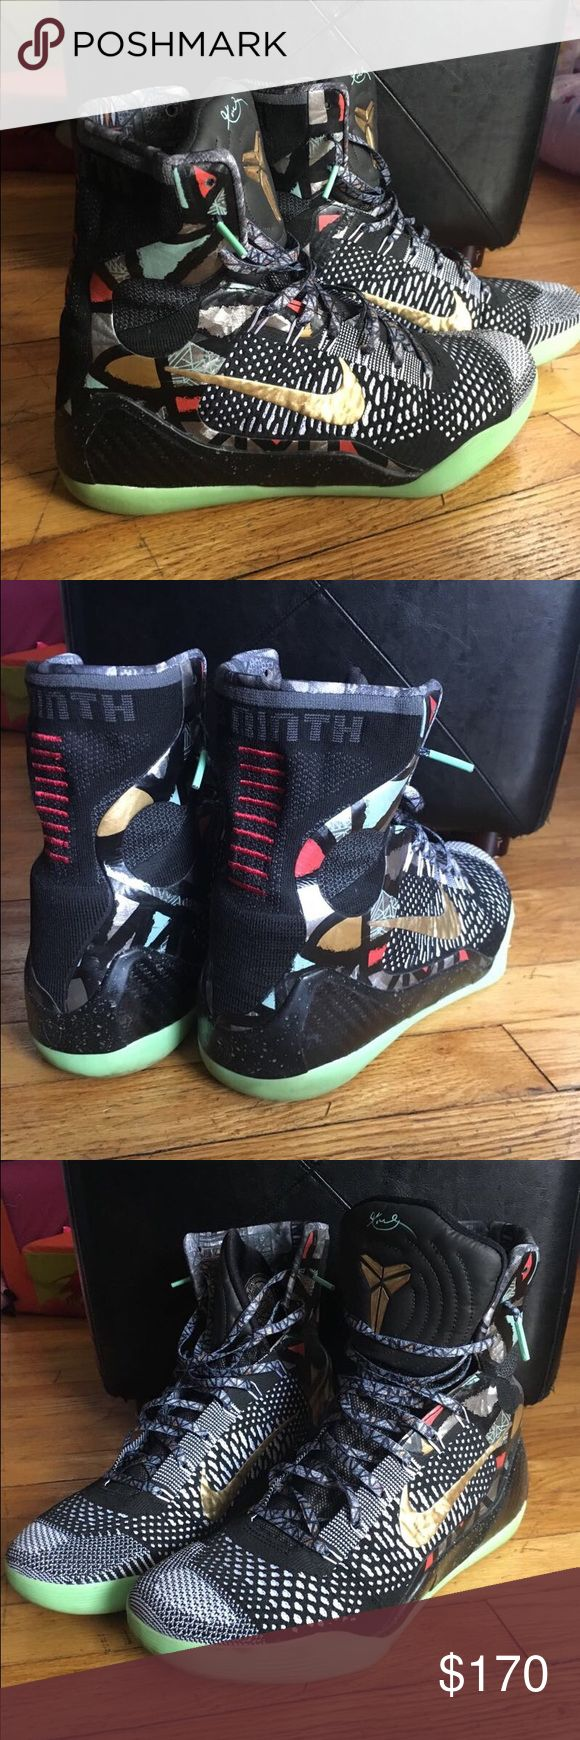 "Nike sz 10 Kobe Bryant ""Gumbo"" all star from 2013 Nike sz 10 Kobe Bryant maestro ""Gumbo"" all star from 2013 in gently used condition .. uppers are clean, comes with original box and the bottom soles glow Nike Shoes Sneakers"